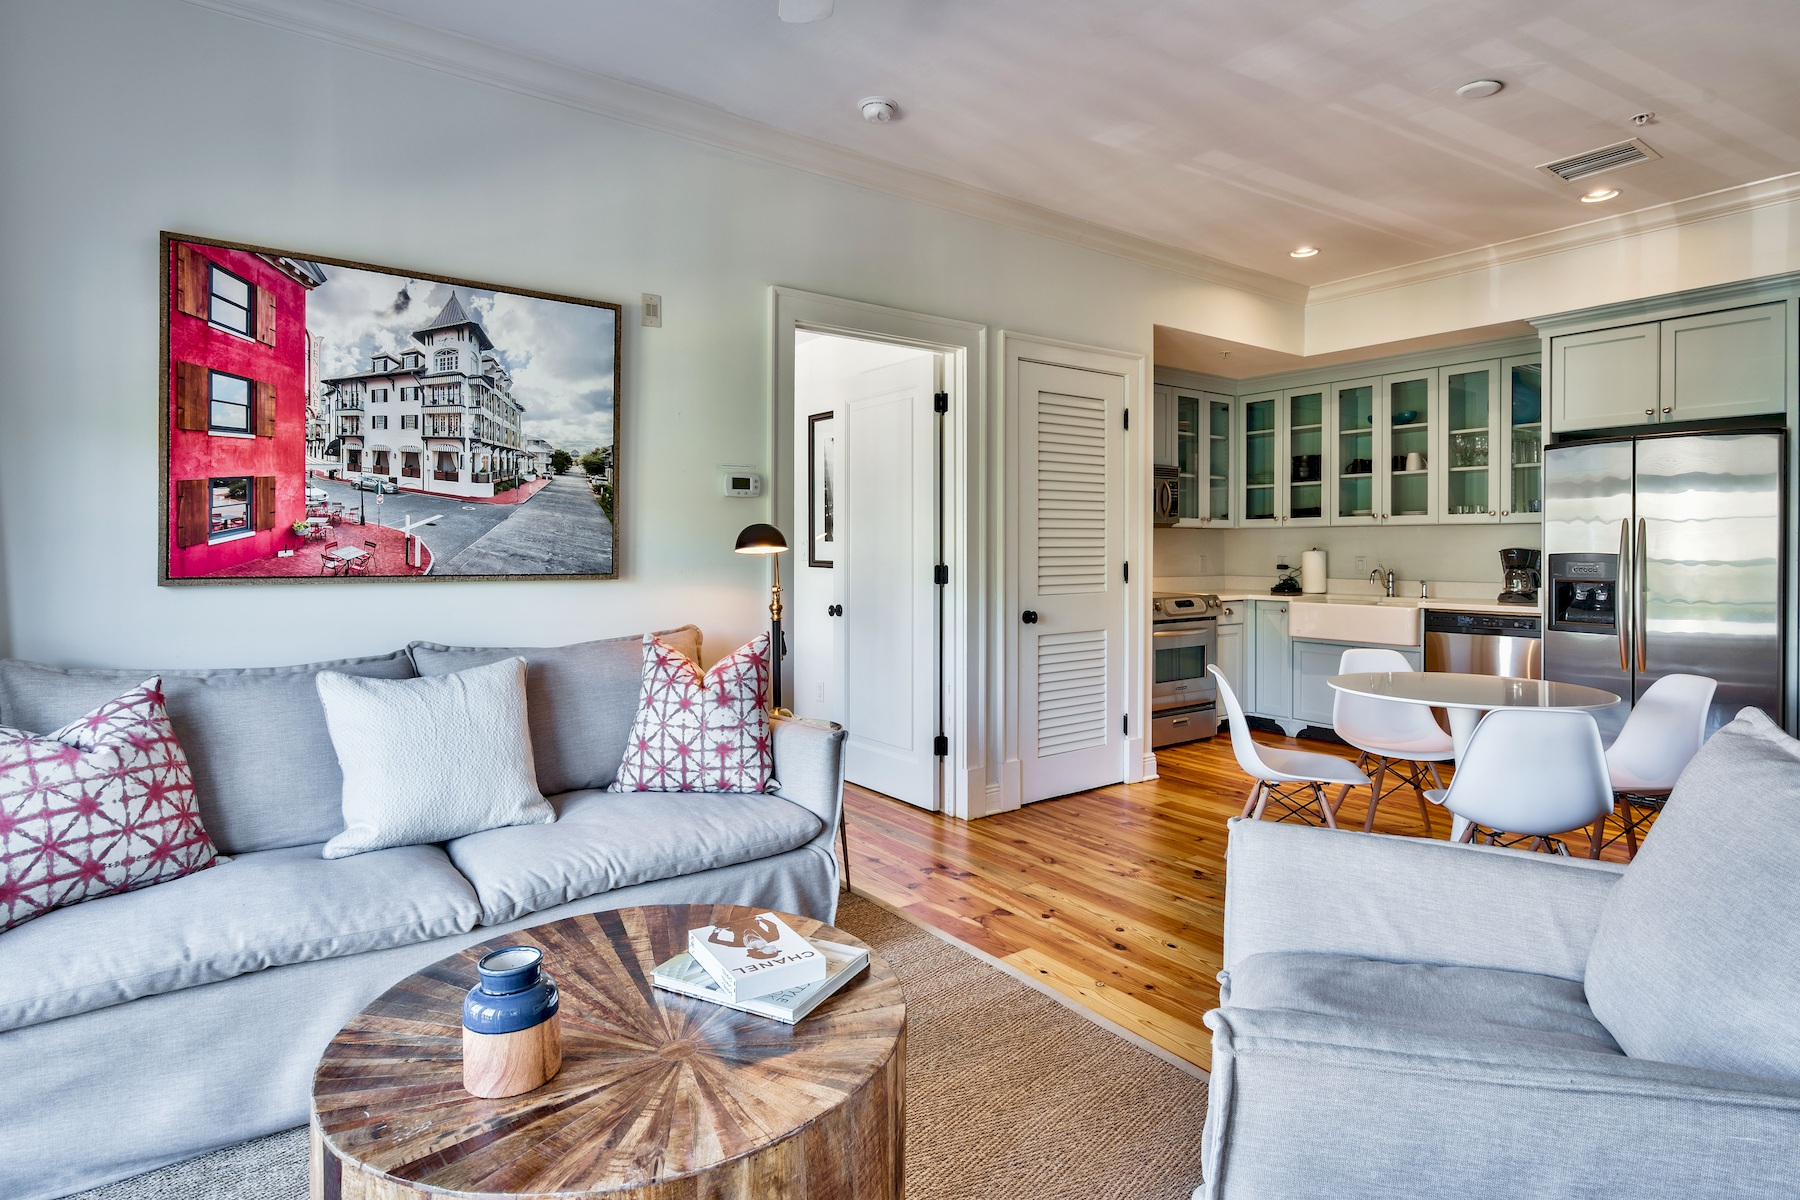 condominiums for Active at Highly Sought-After Rosemary Beach Condo with Notable Luxury Features 104 North Barrett Square 2E Rosemary Beach, Florida 32461 United States